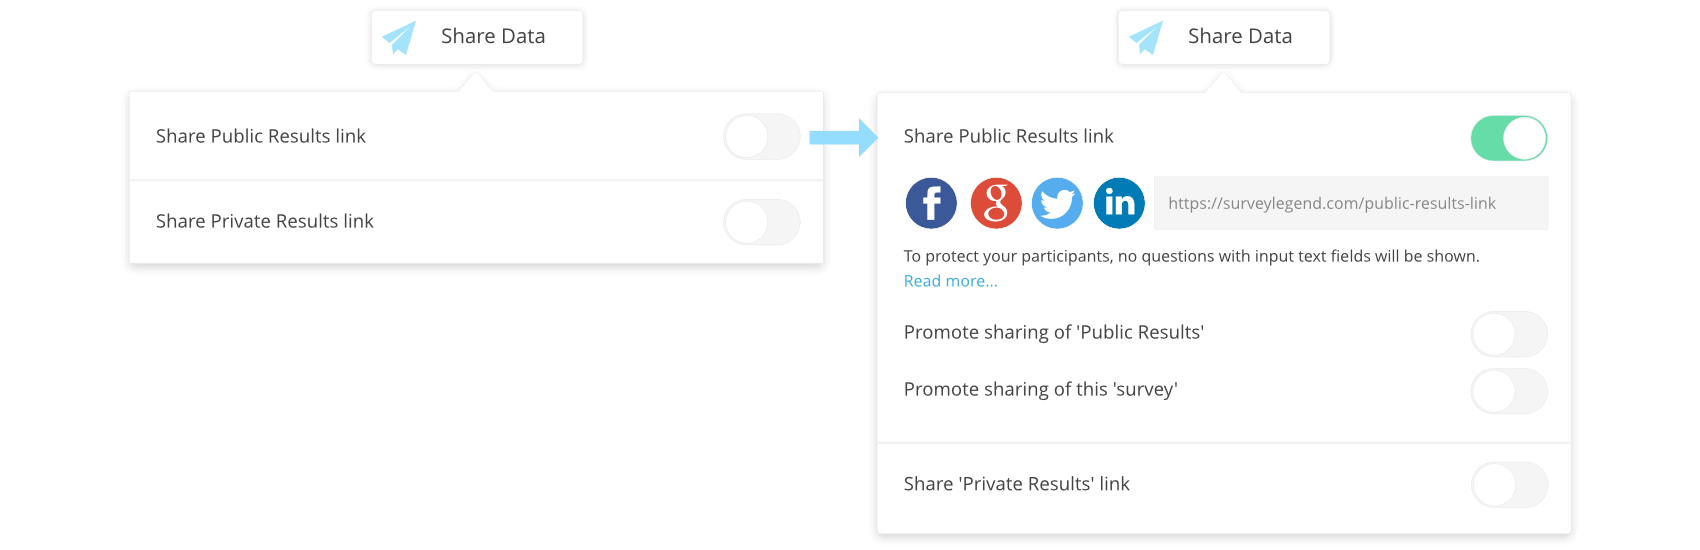 Clicking on the Share Data button gives you options of sharing your surveys privately or publicly.